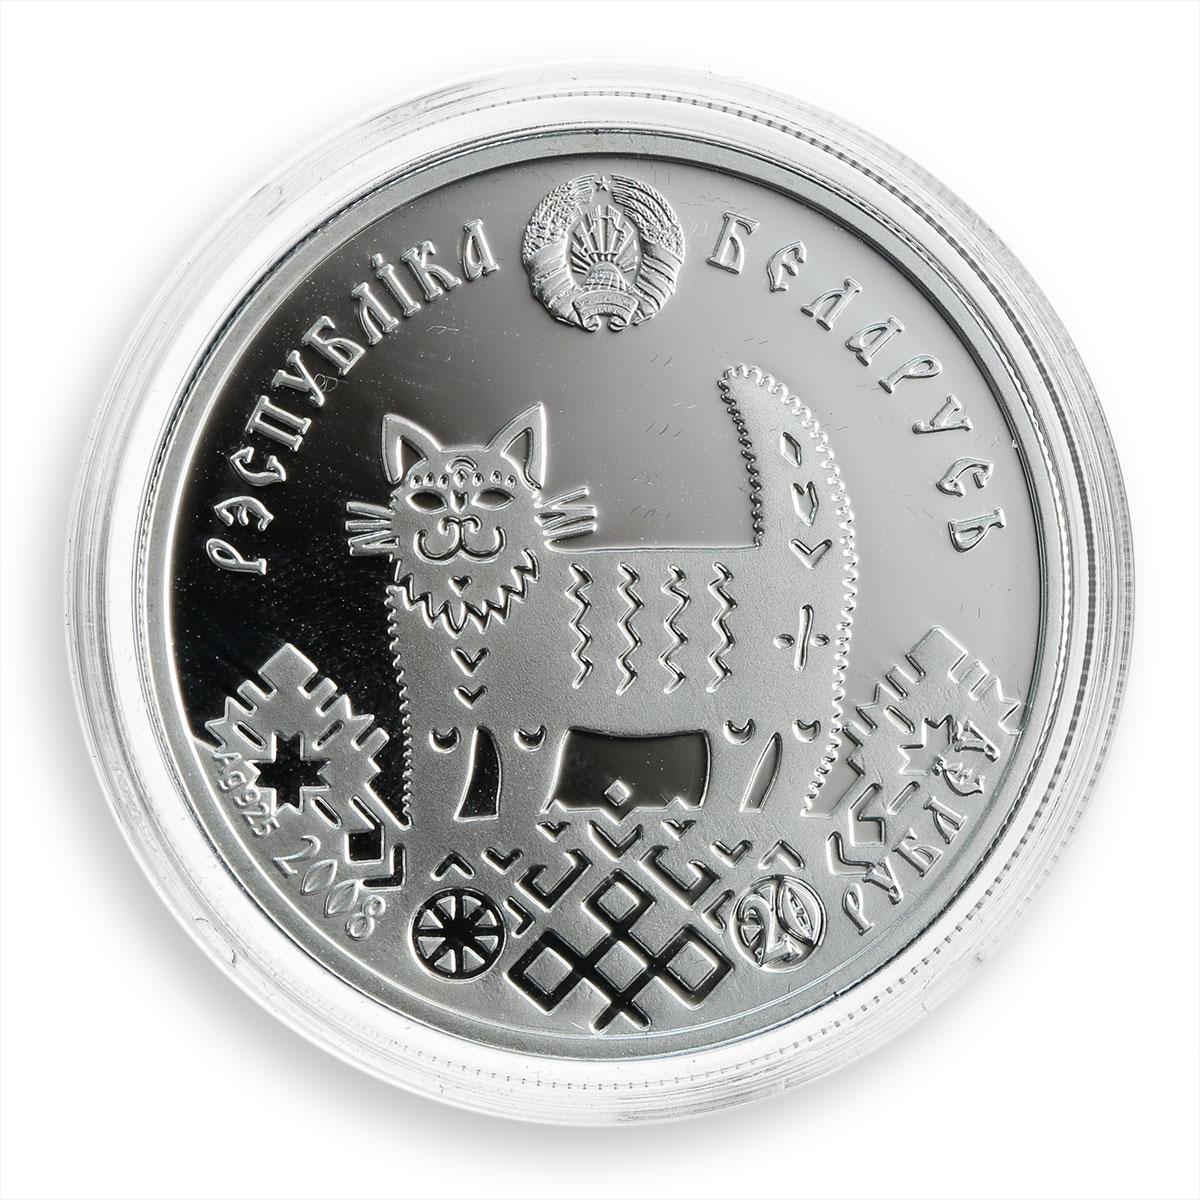 Belarus 20 rubles, Housewarming, Slavs' Tradition, key, cat, silver coin, 2008